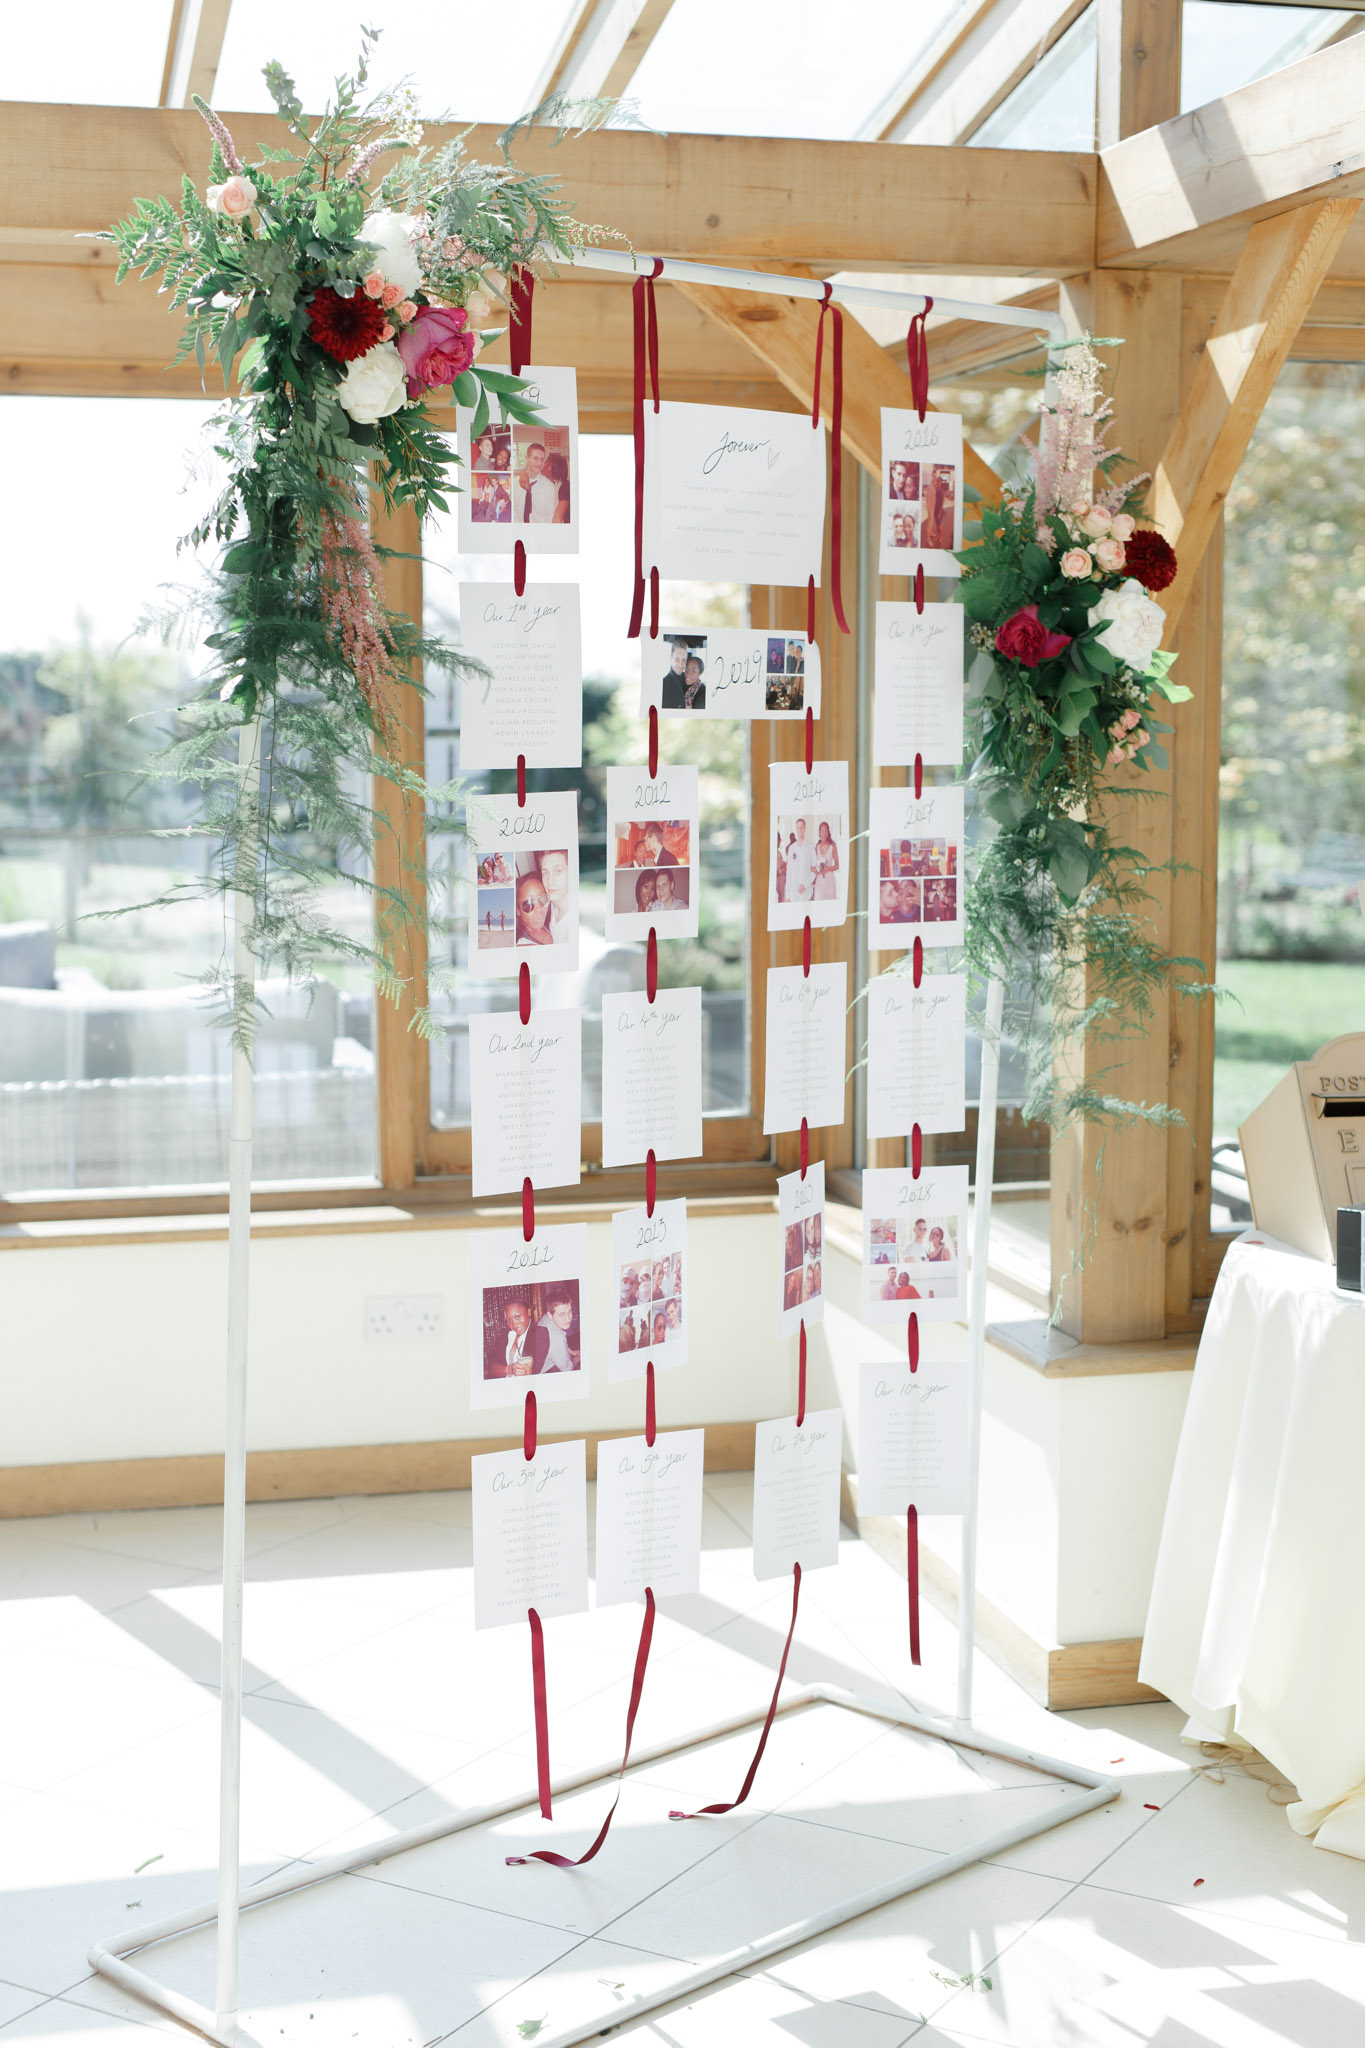 ryan thomas wedding hanging seating chart